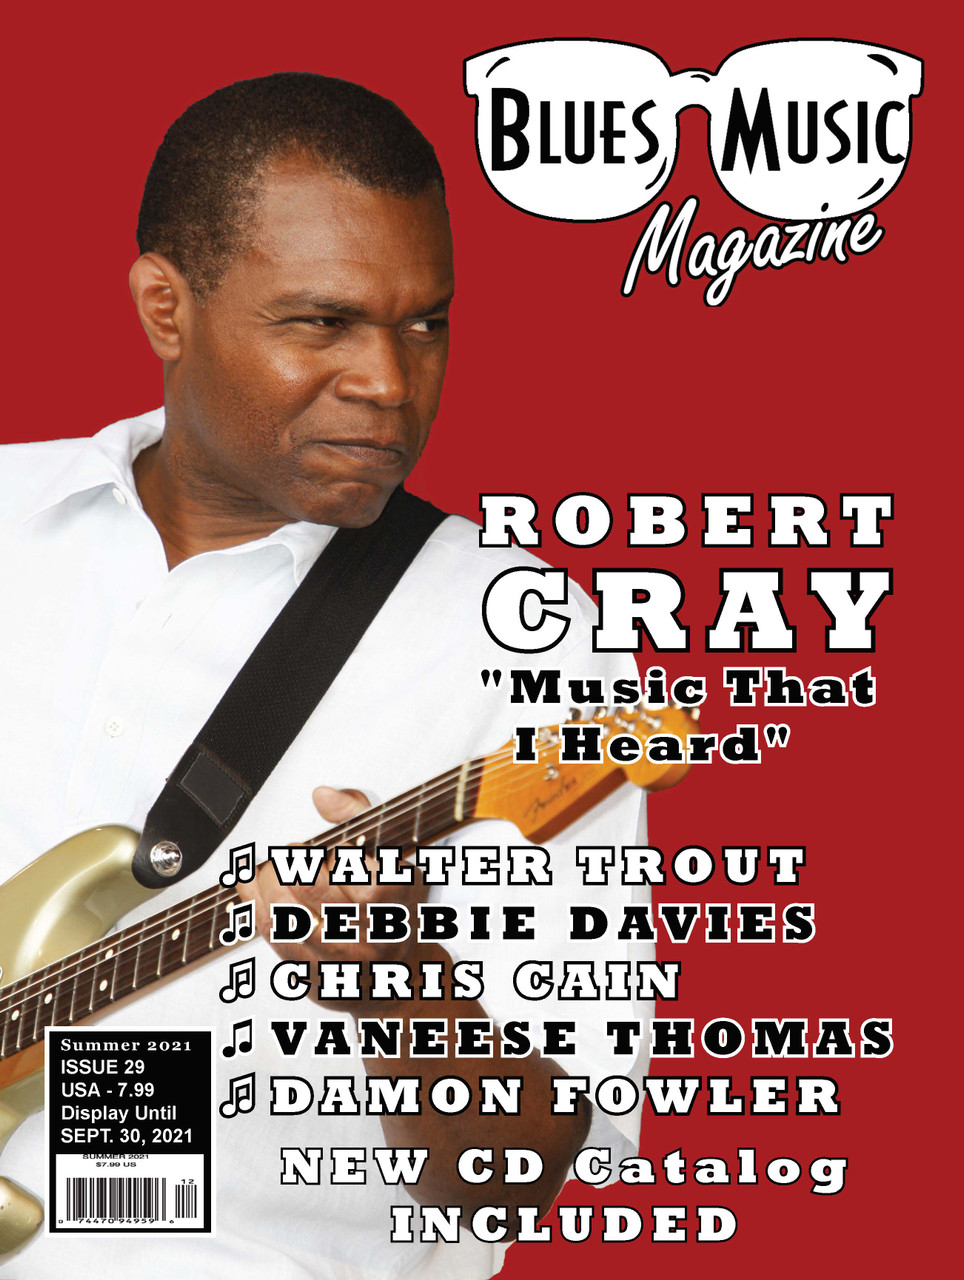 USA ONLY - THE SPRING ISSUE - July 2021 - SINGLE COPY & FREE USA SHIPPING